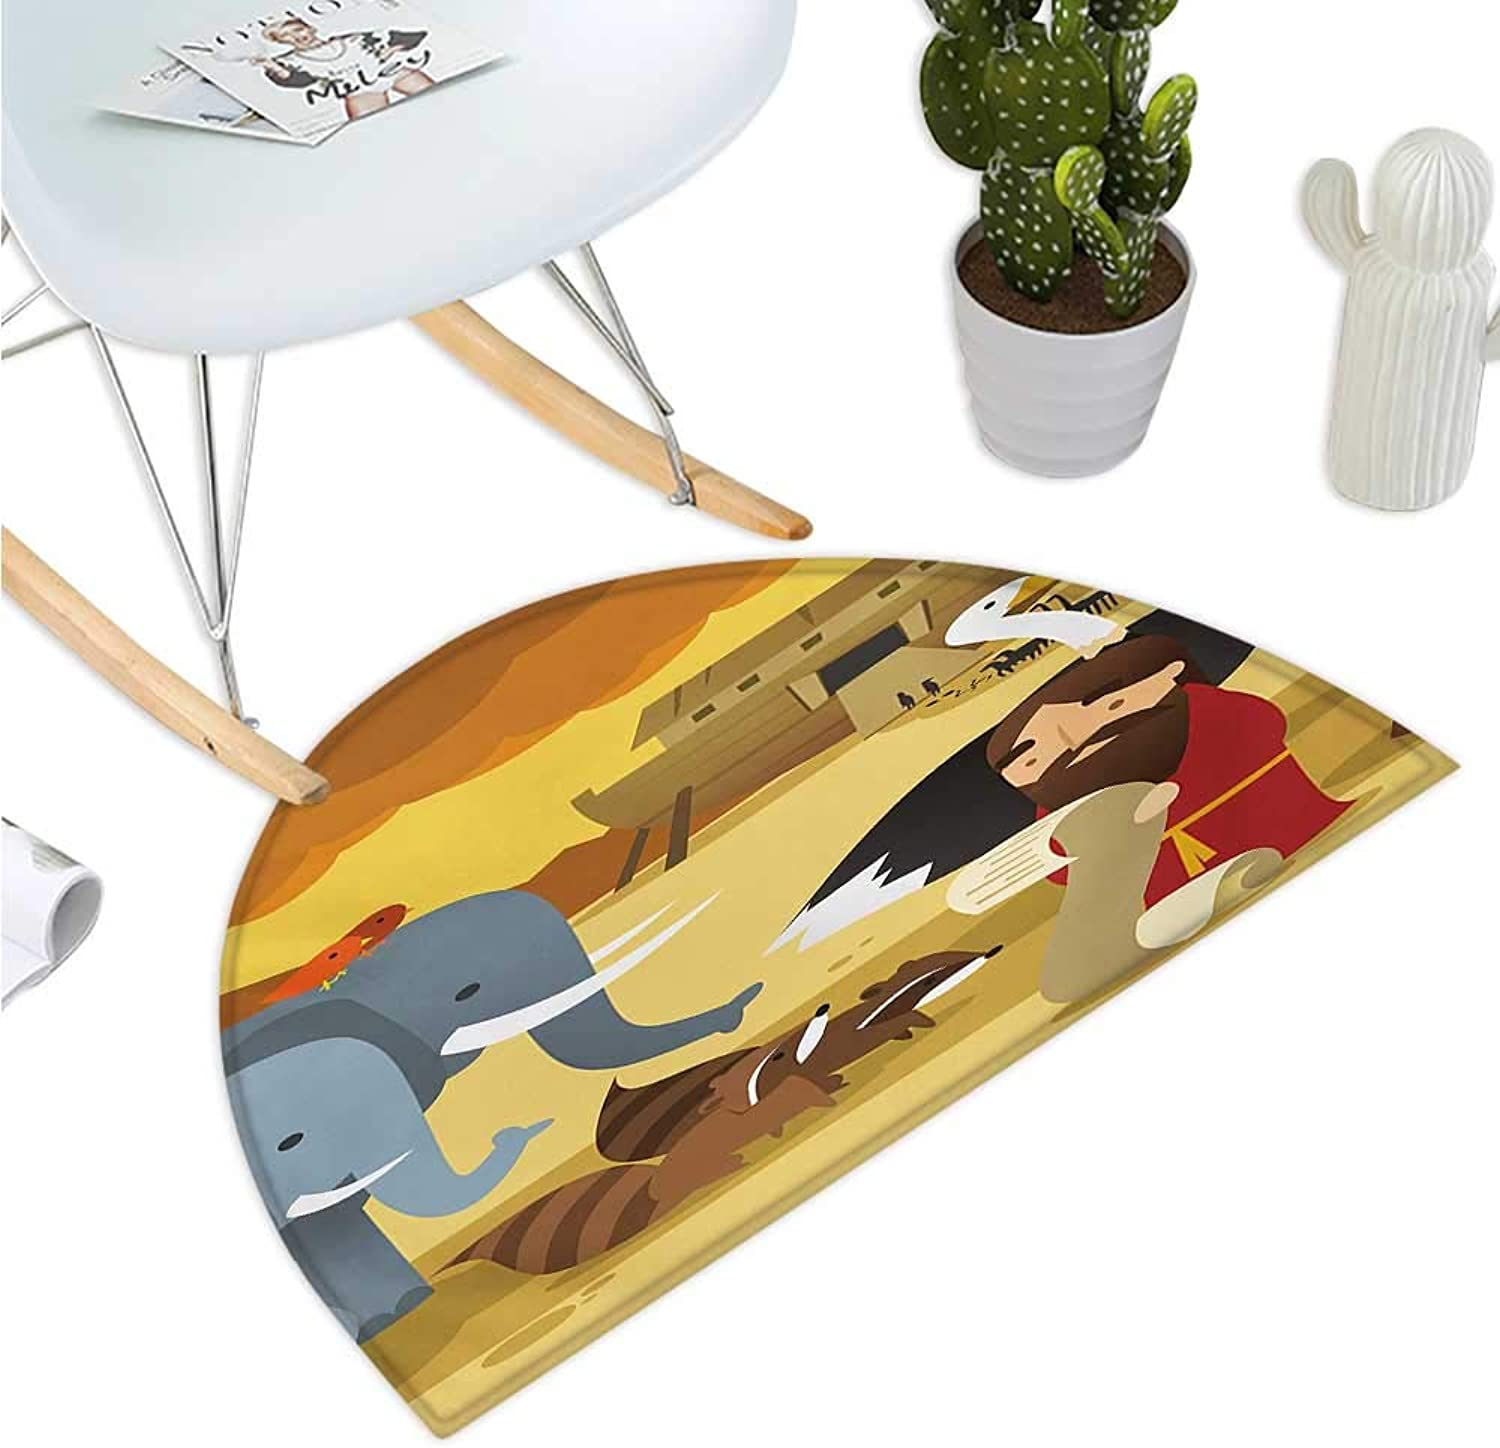 Religious Semicircular Cushion Animals in The Ark Illustration with Mythical Elephant Ancient Cute Cartoon Print Entry Door Mat H 39.3  xD 59  Multicolor